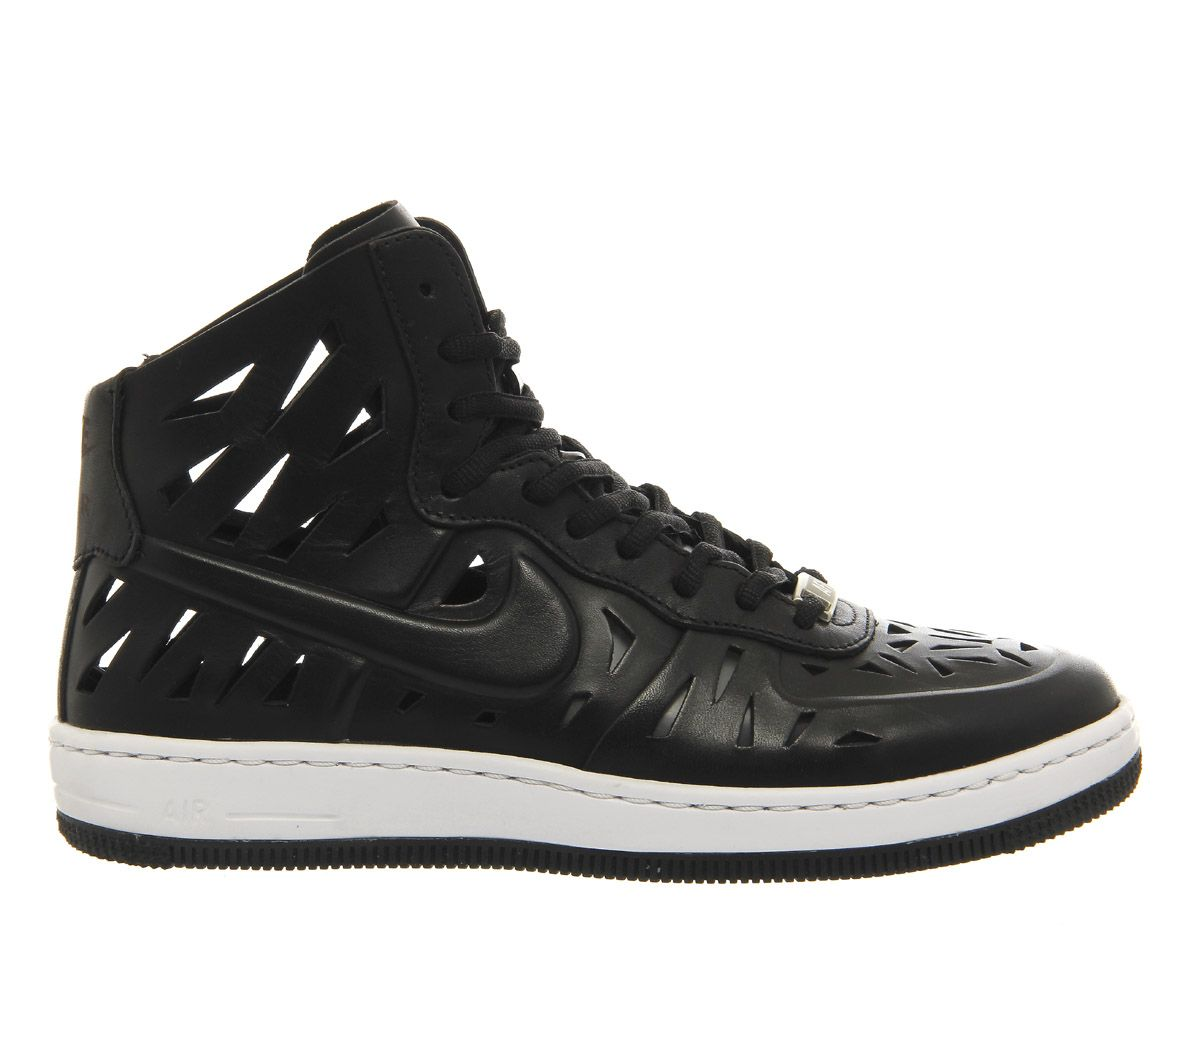 new style 943c1 d66bf Nike Air Force 1 Mid (w) Black Cut Out Ultra Force Joli - Hers trainers